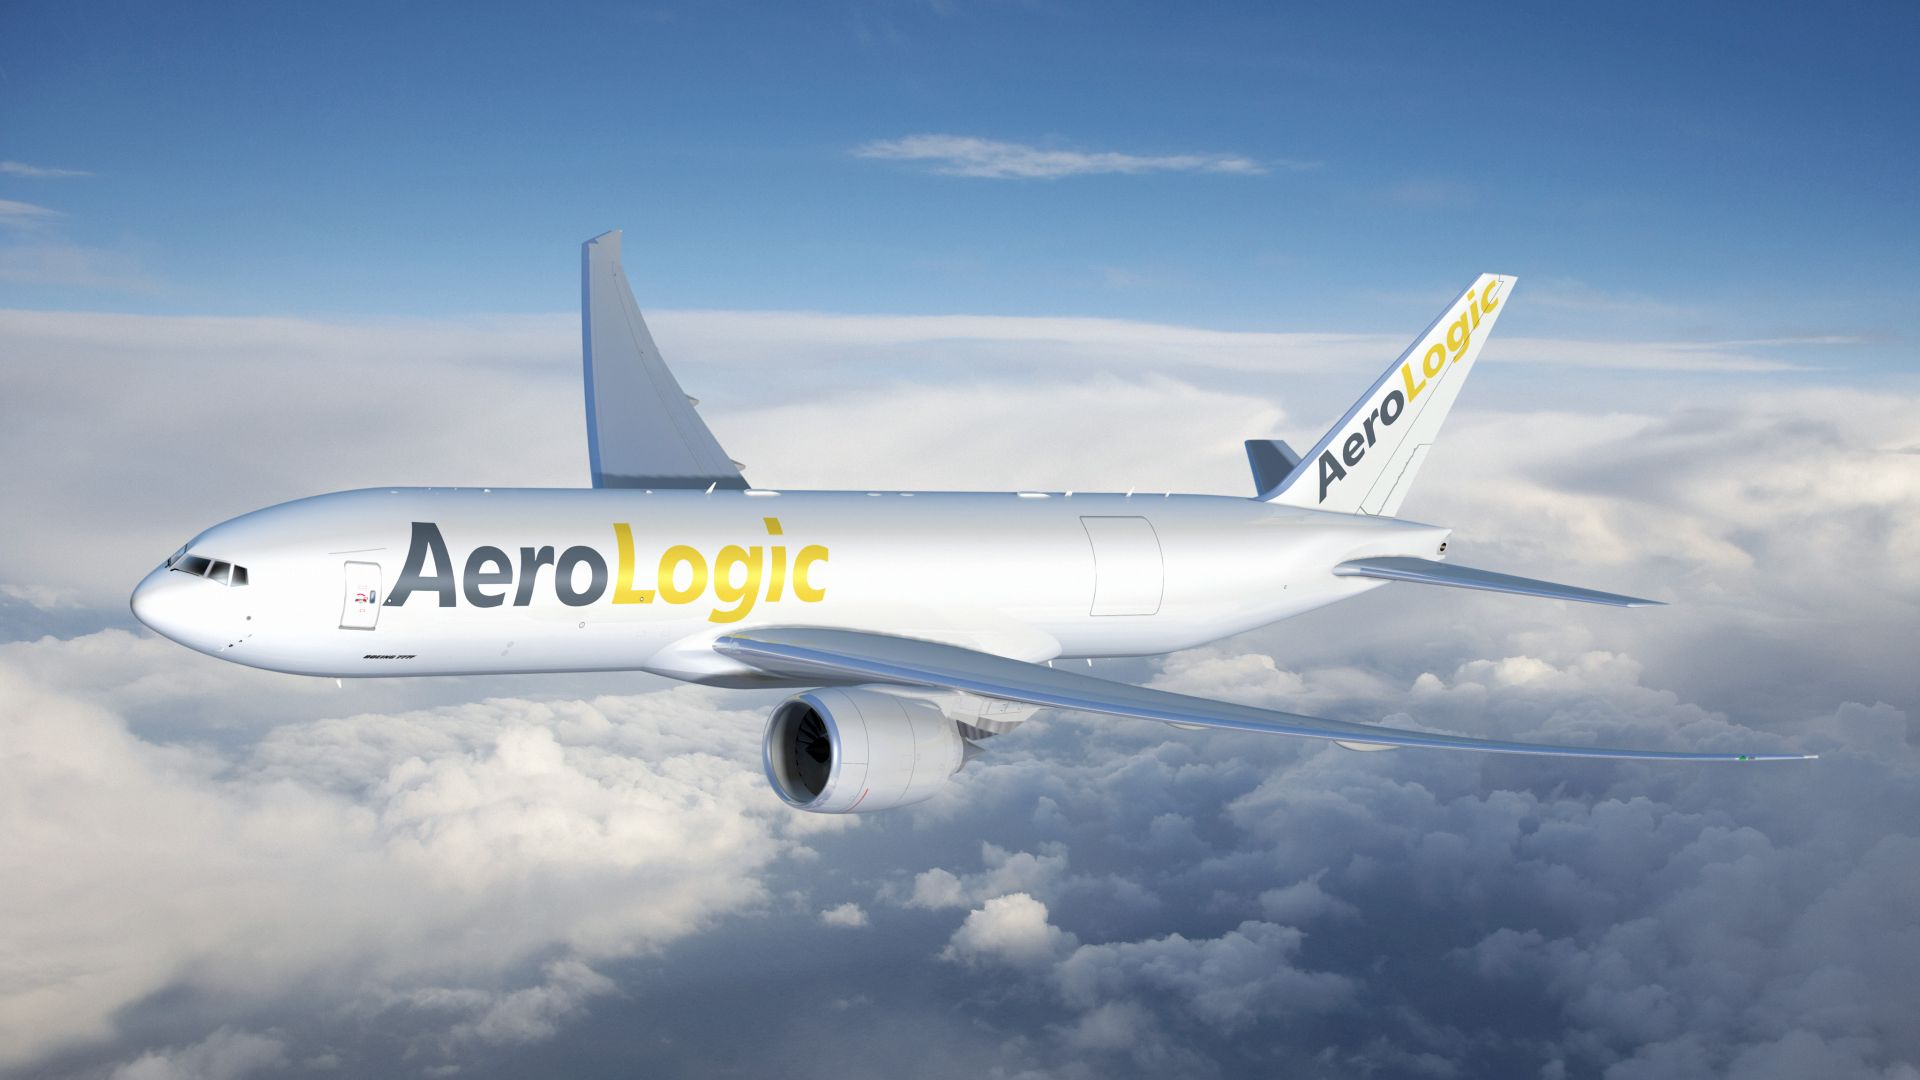 AeroLogic relies on component supply from Lufthansa Technik